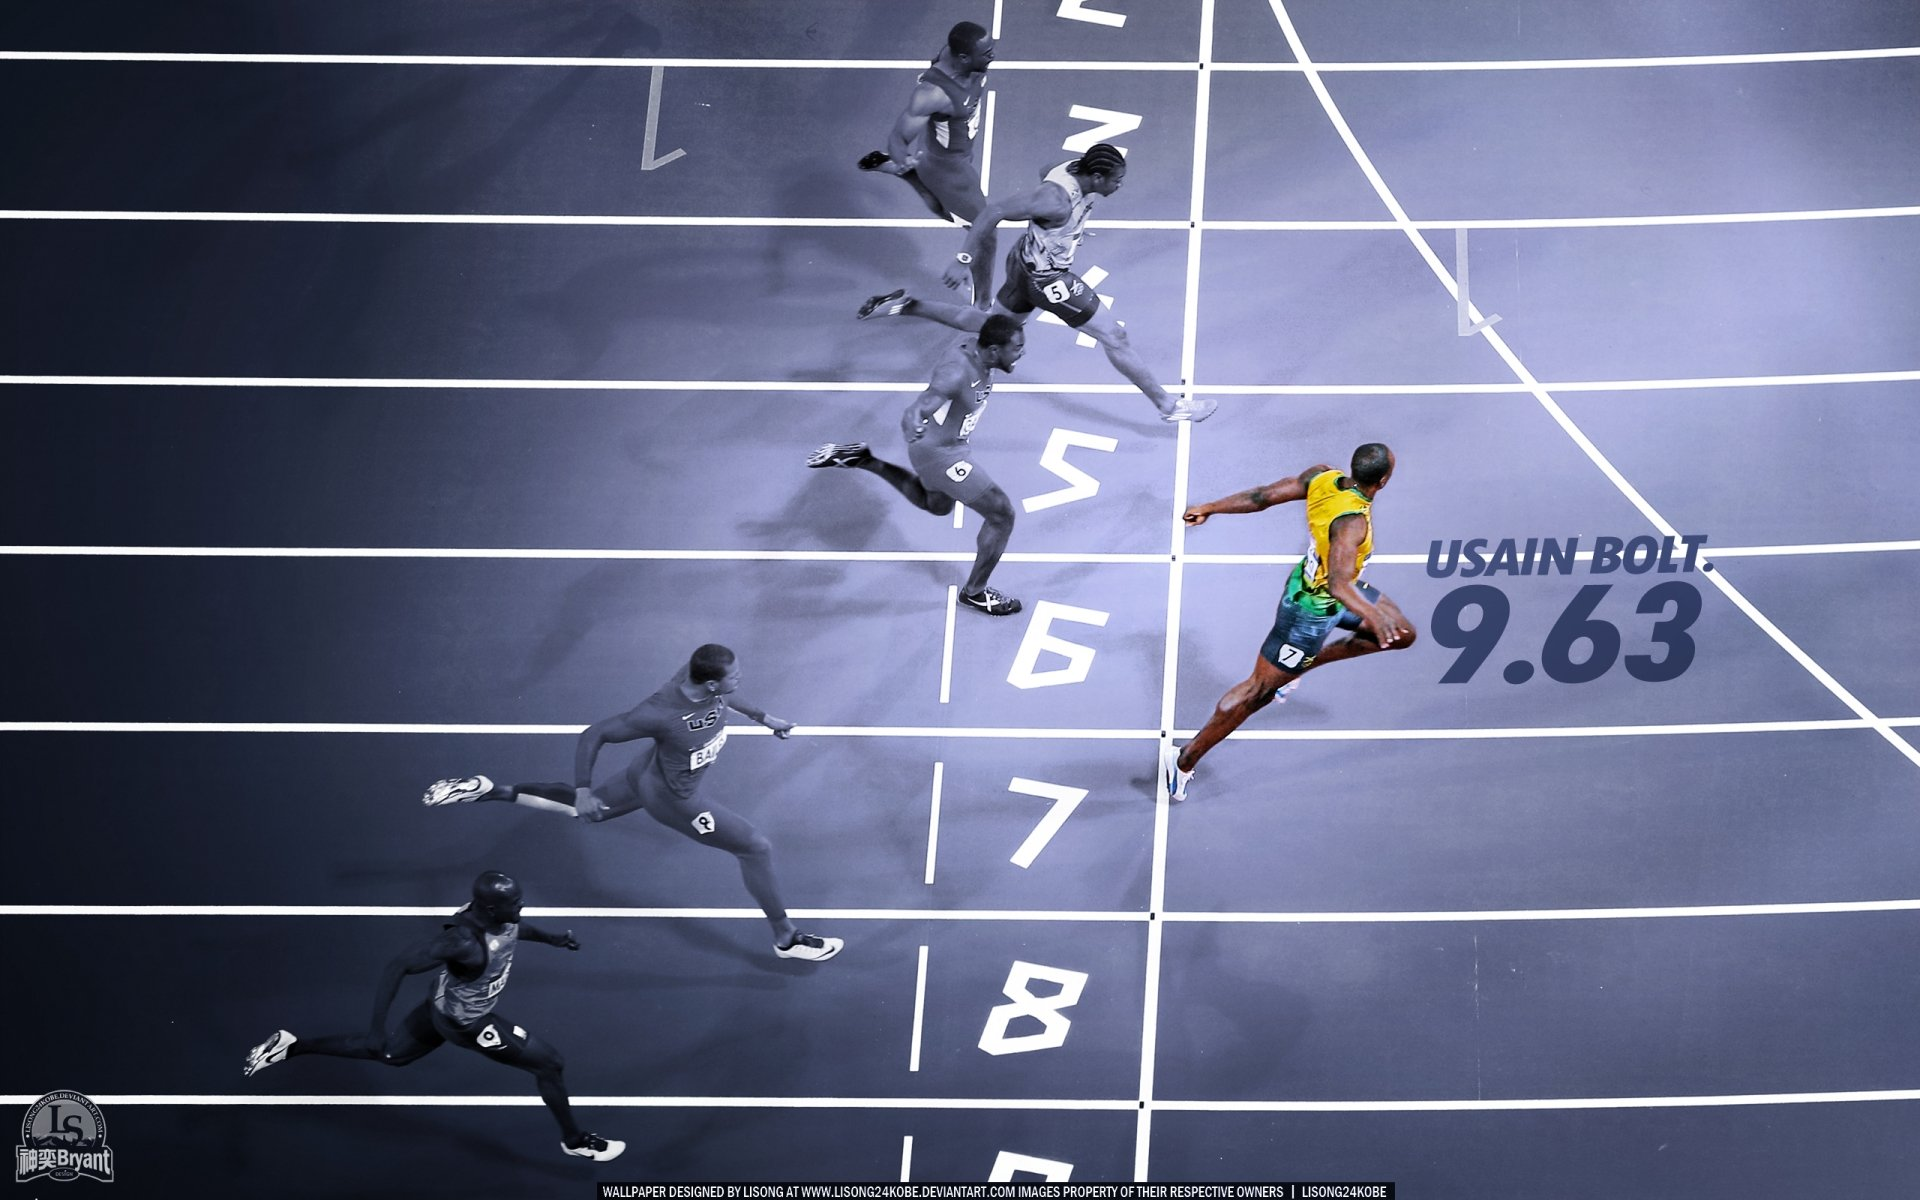 Free Download Usain Bolt Wallpaper ID322656 Hd 1920x1200 For Computer